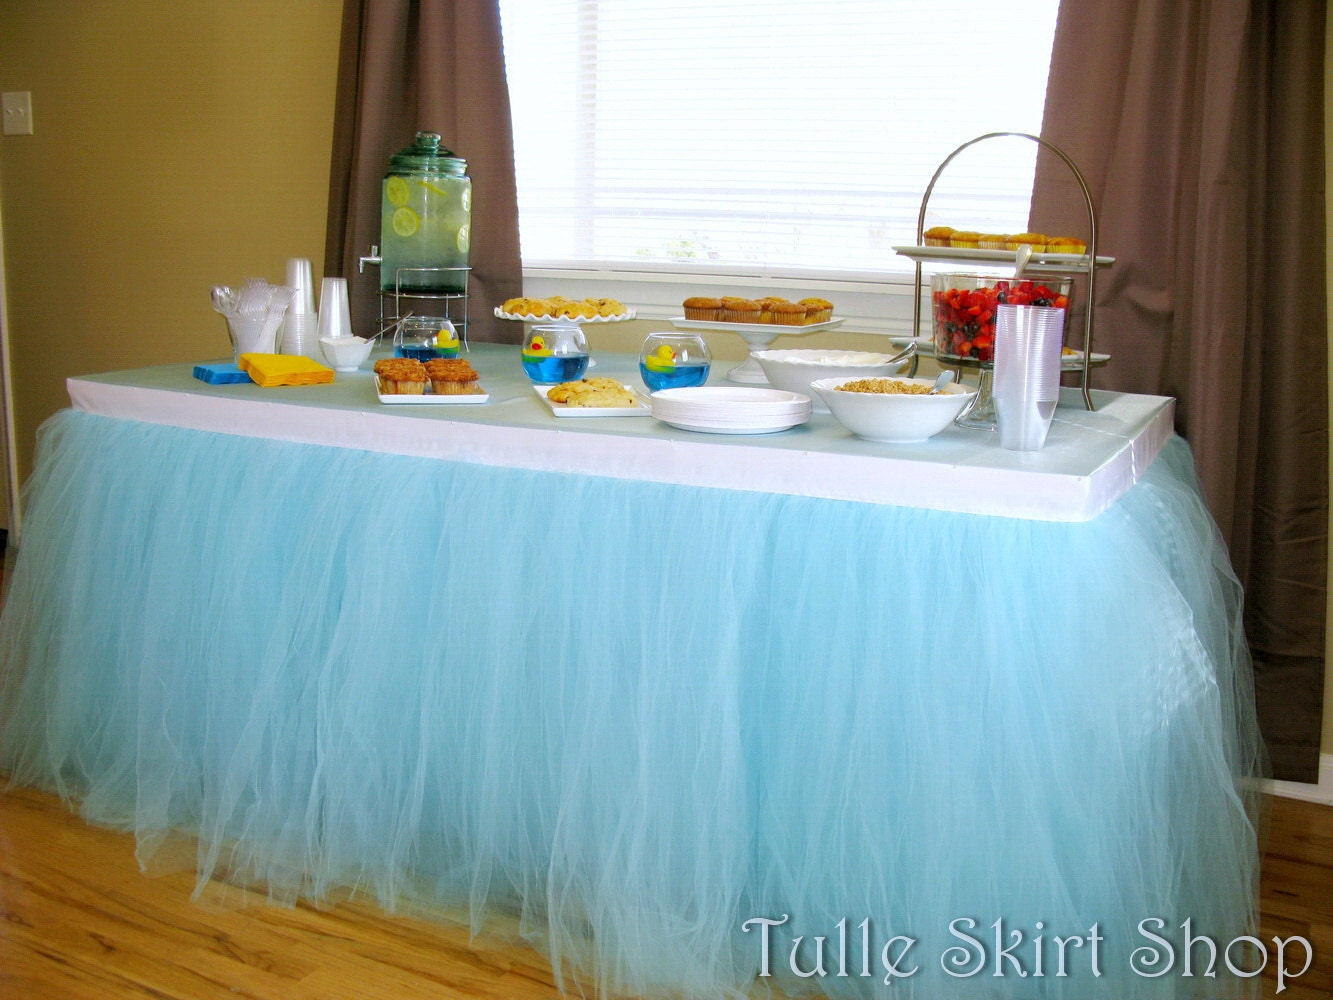 Buffet table skirting - Blue Tulle Table Skirt Tutu Tableskirt For Wedding Birthday Baby Shower Custom Size Made To Order